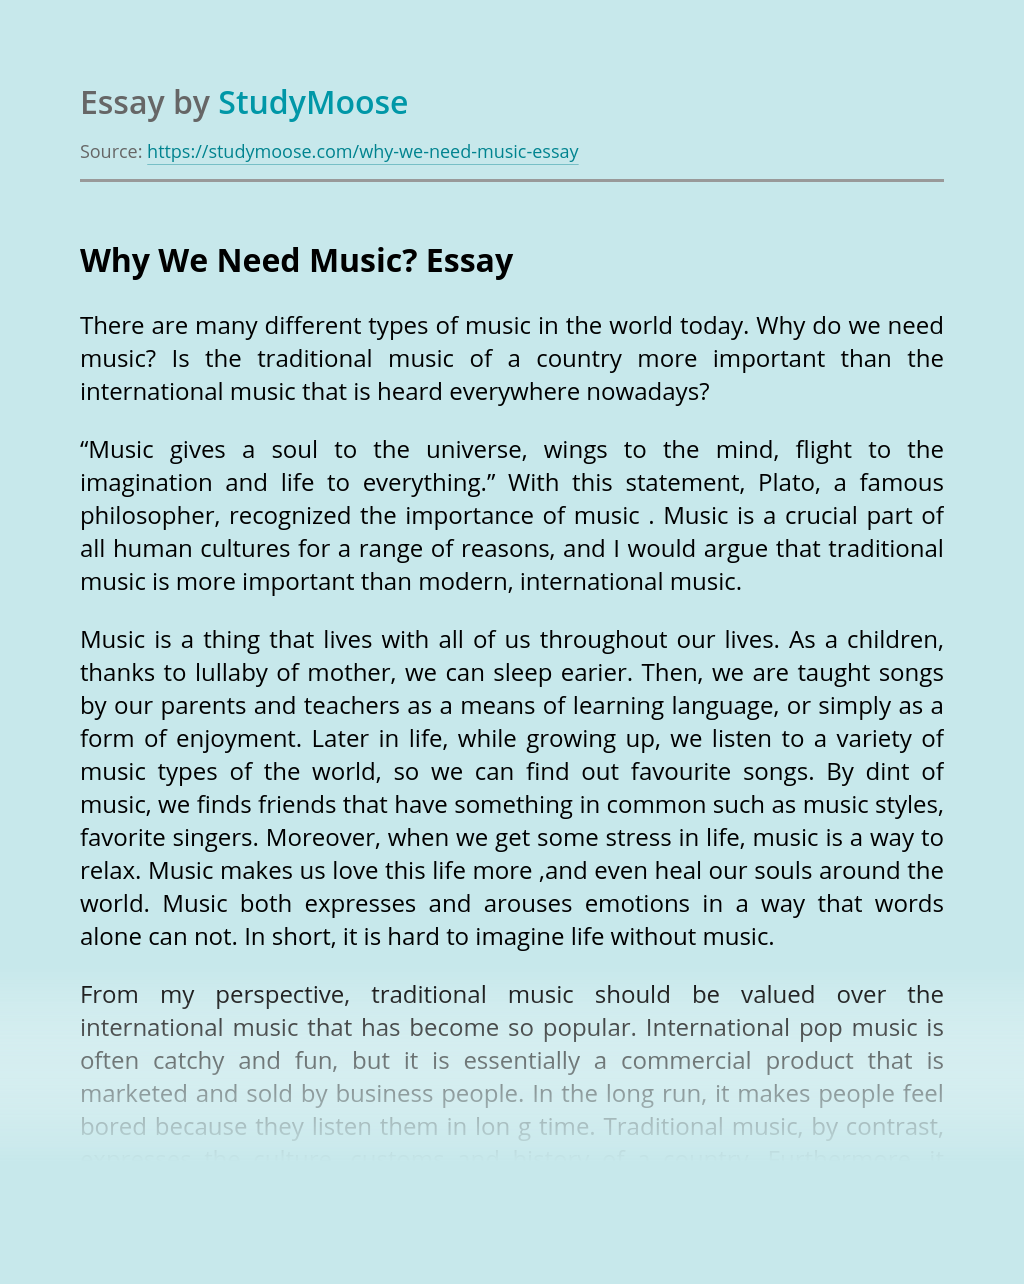 Why We Need Music?